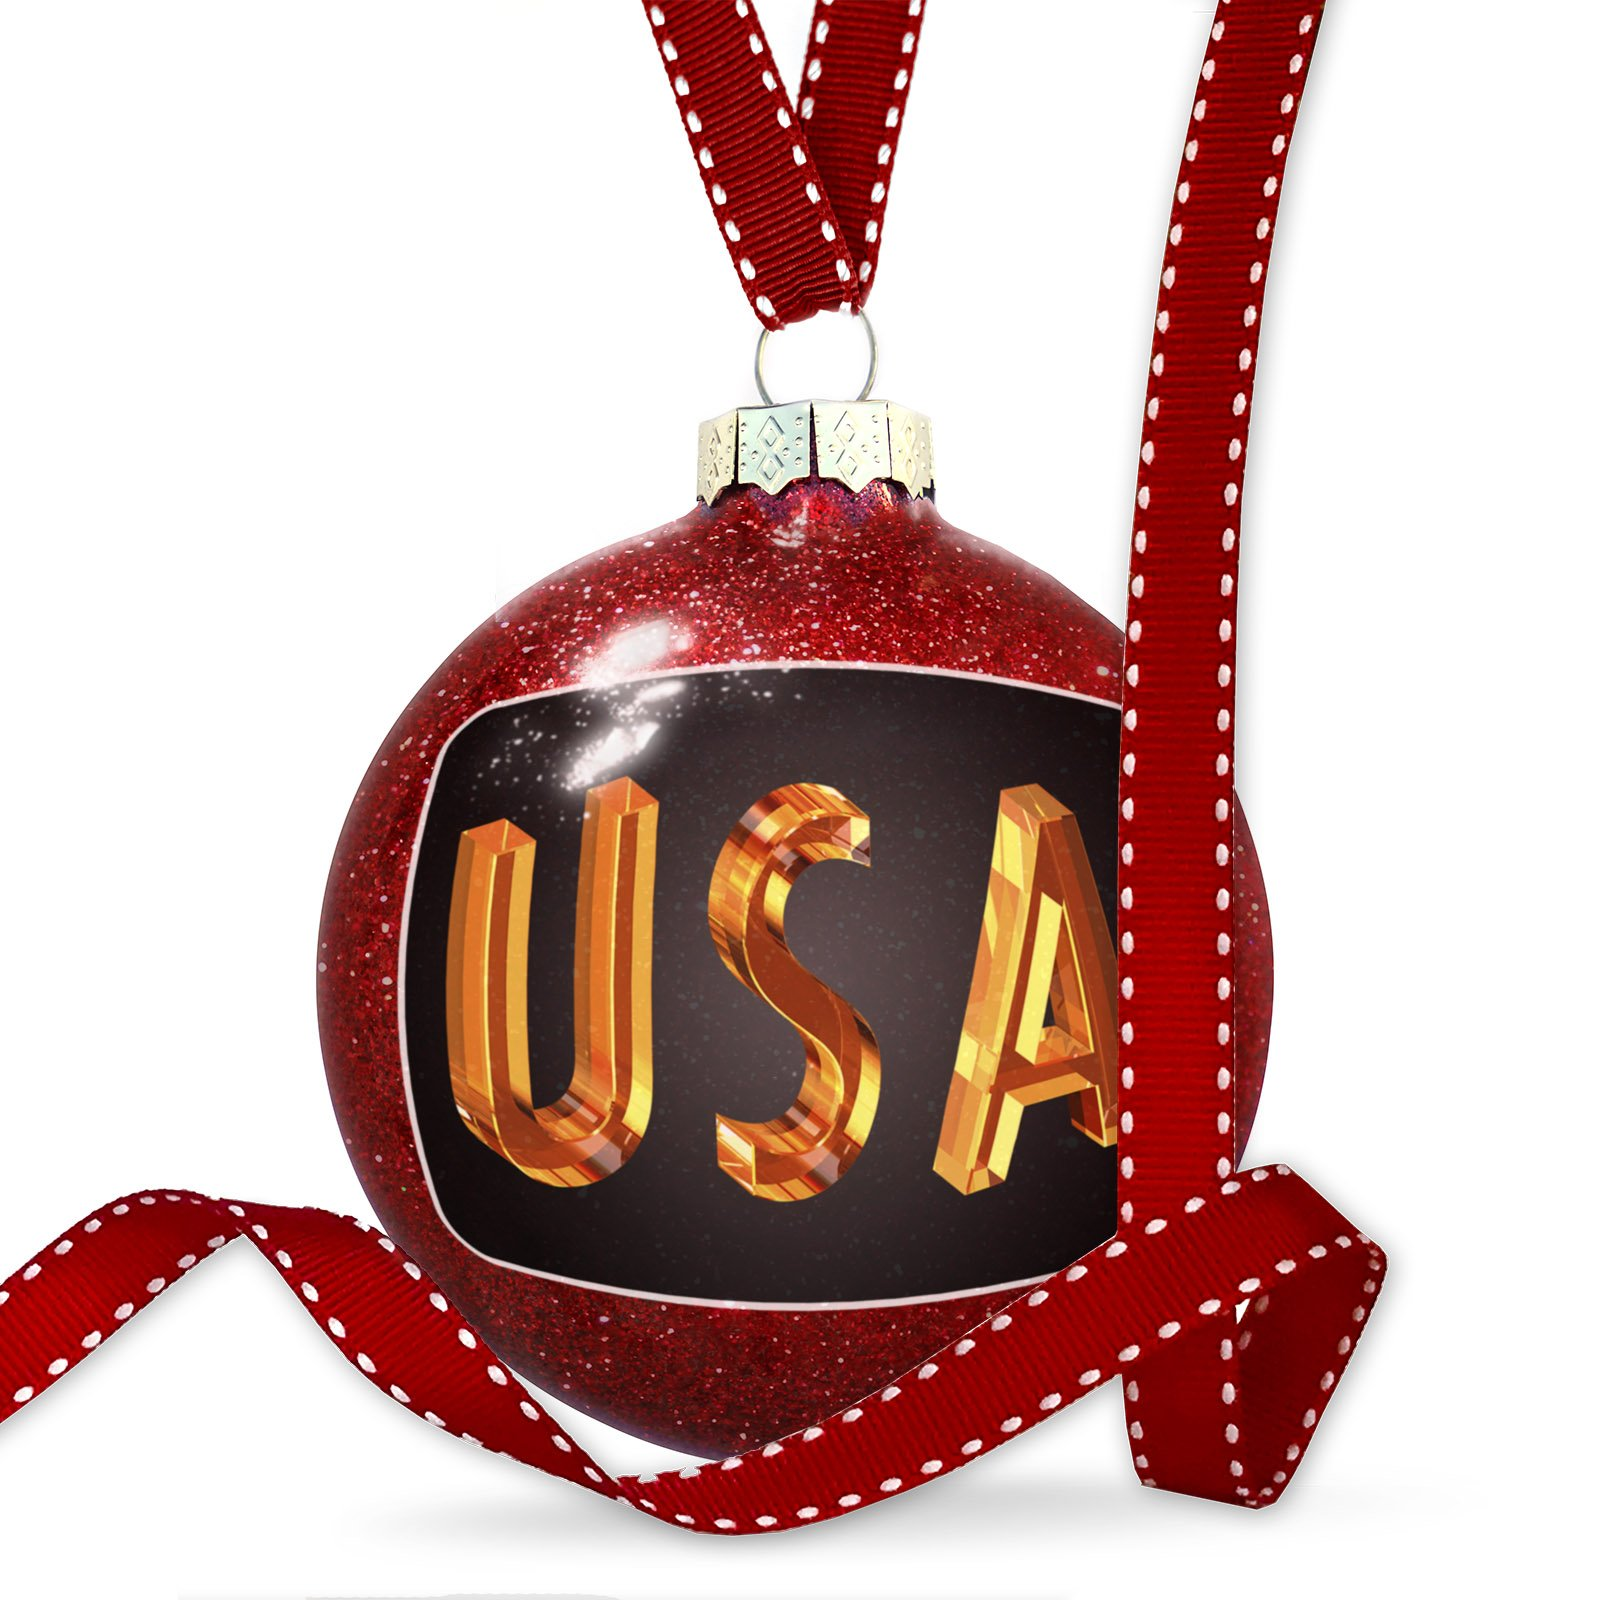 Christmas Decoration United States of America Cubik Glass Ornament